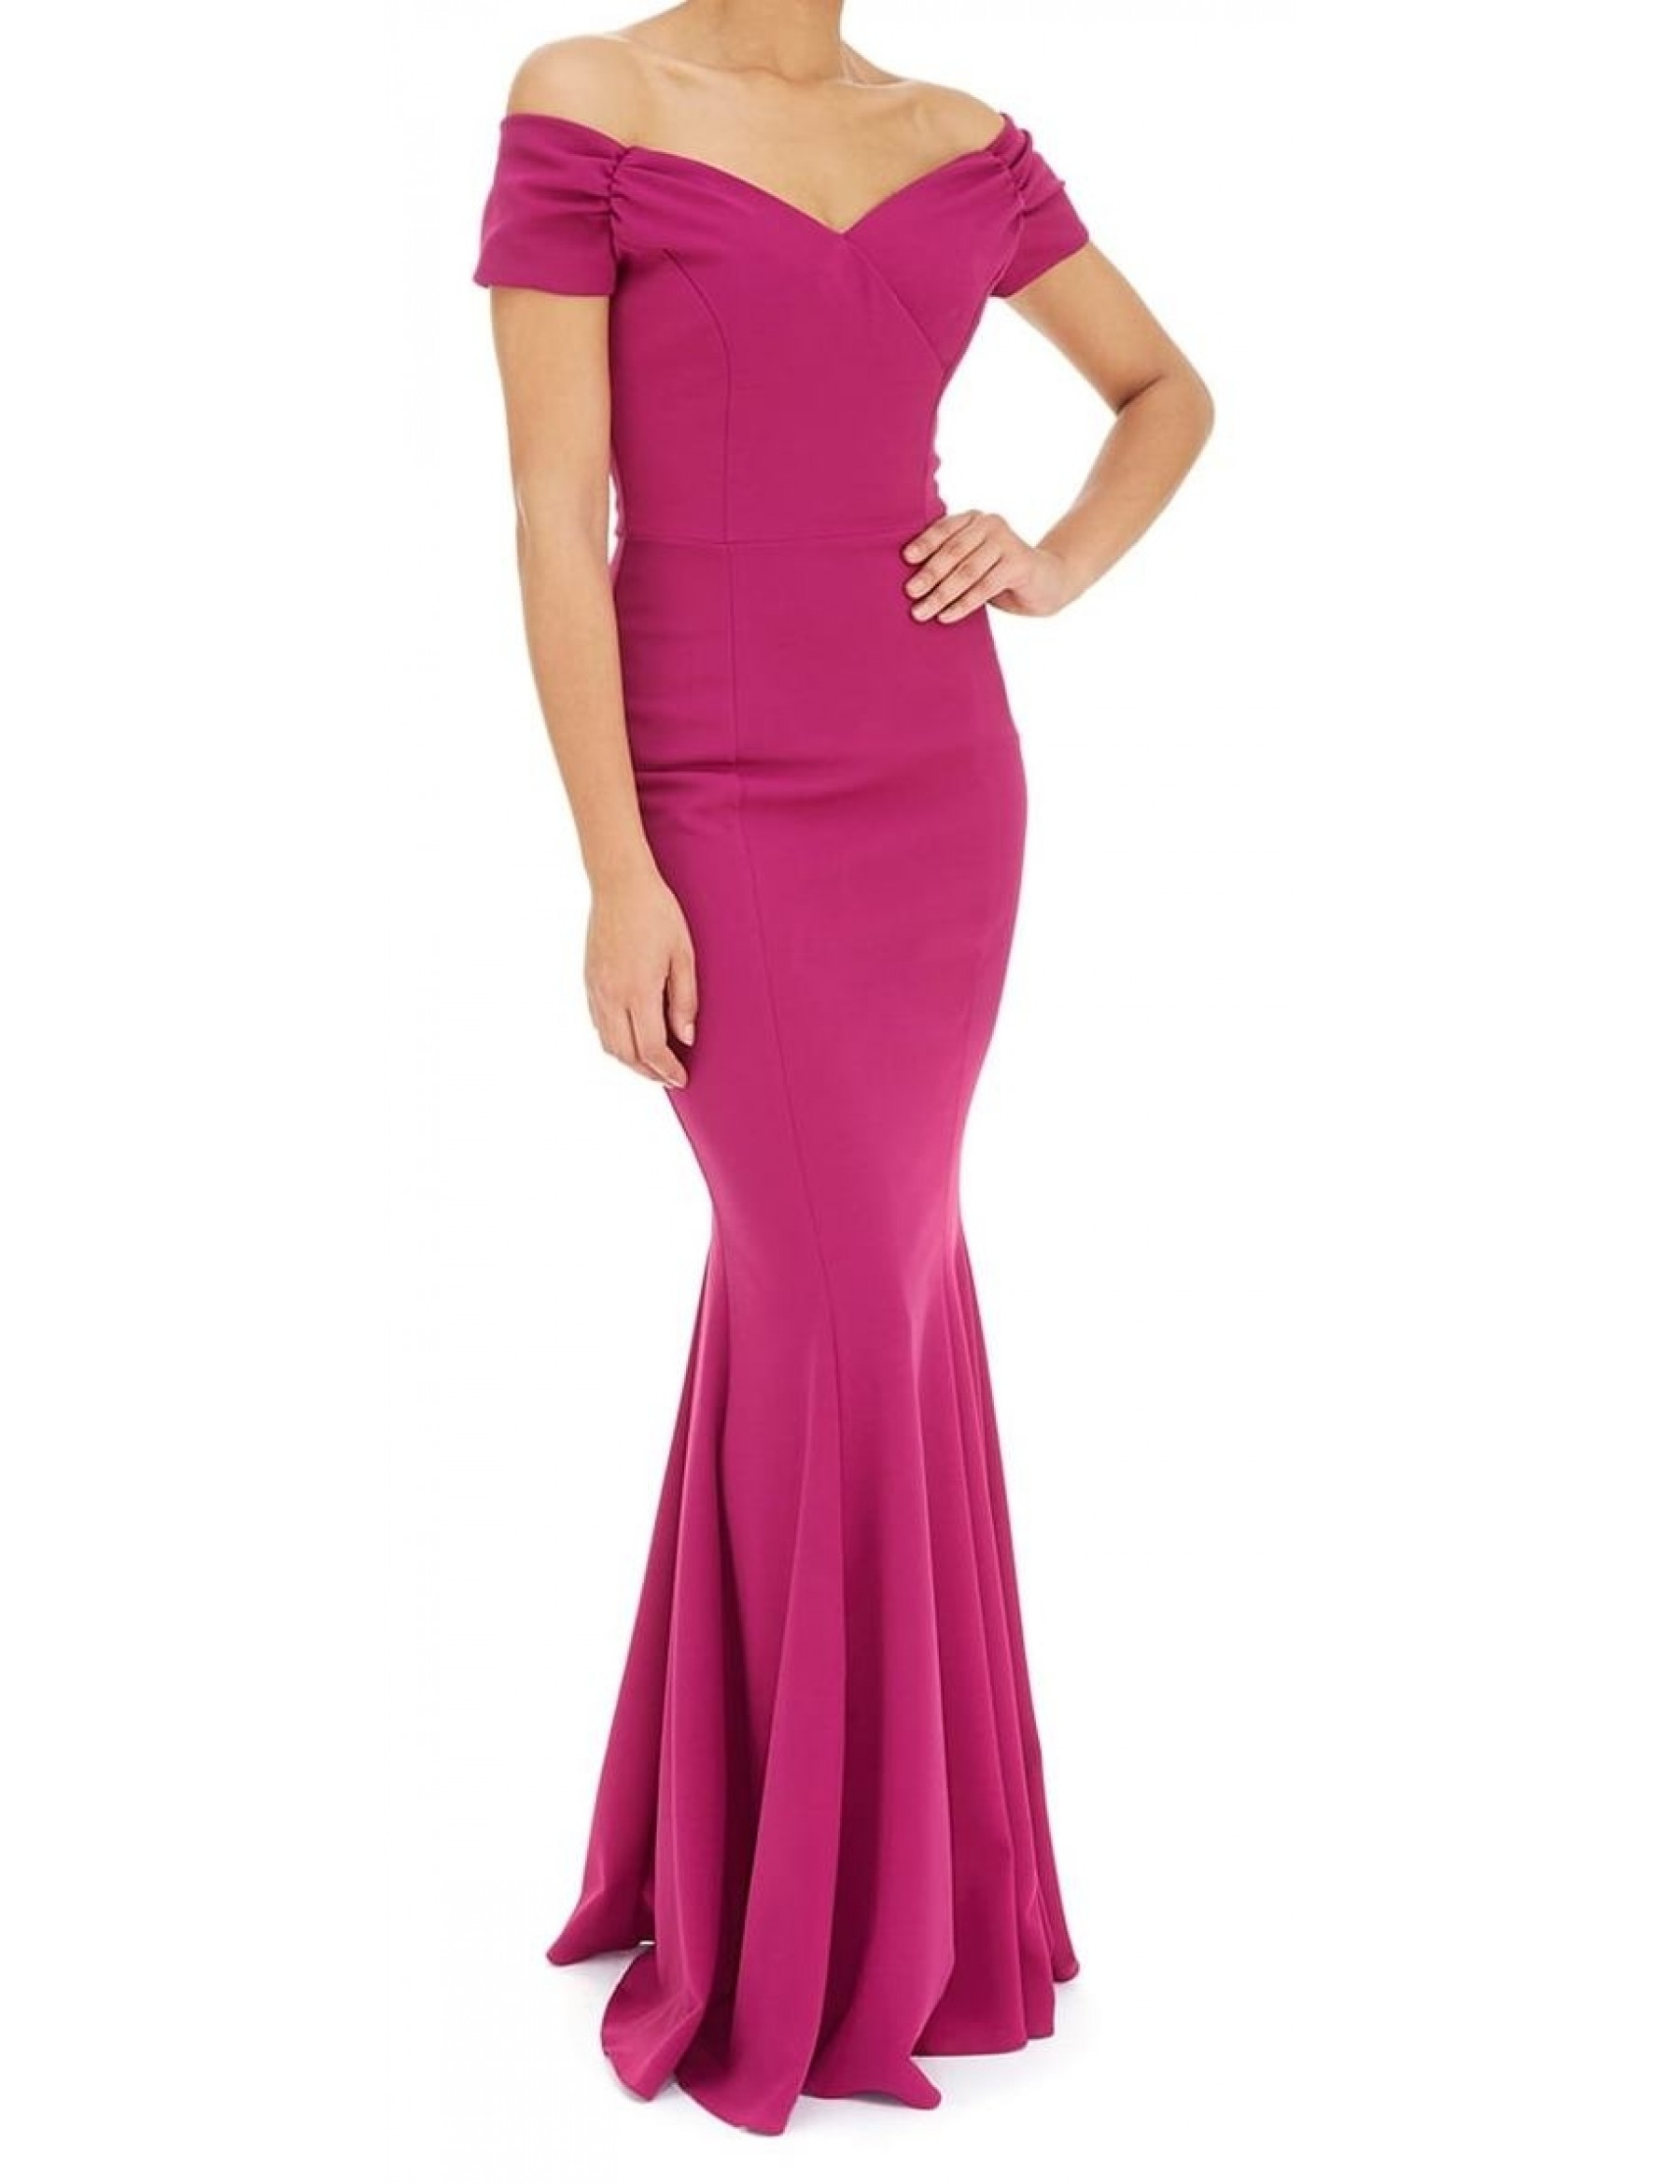 Fishtail Evening Dress